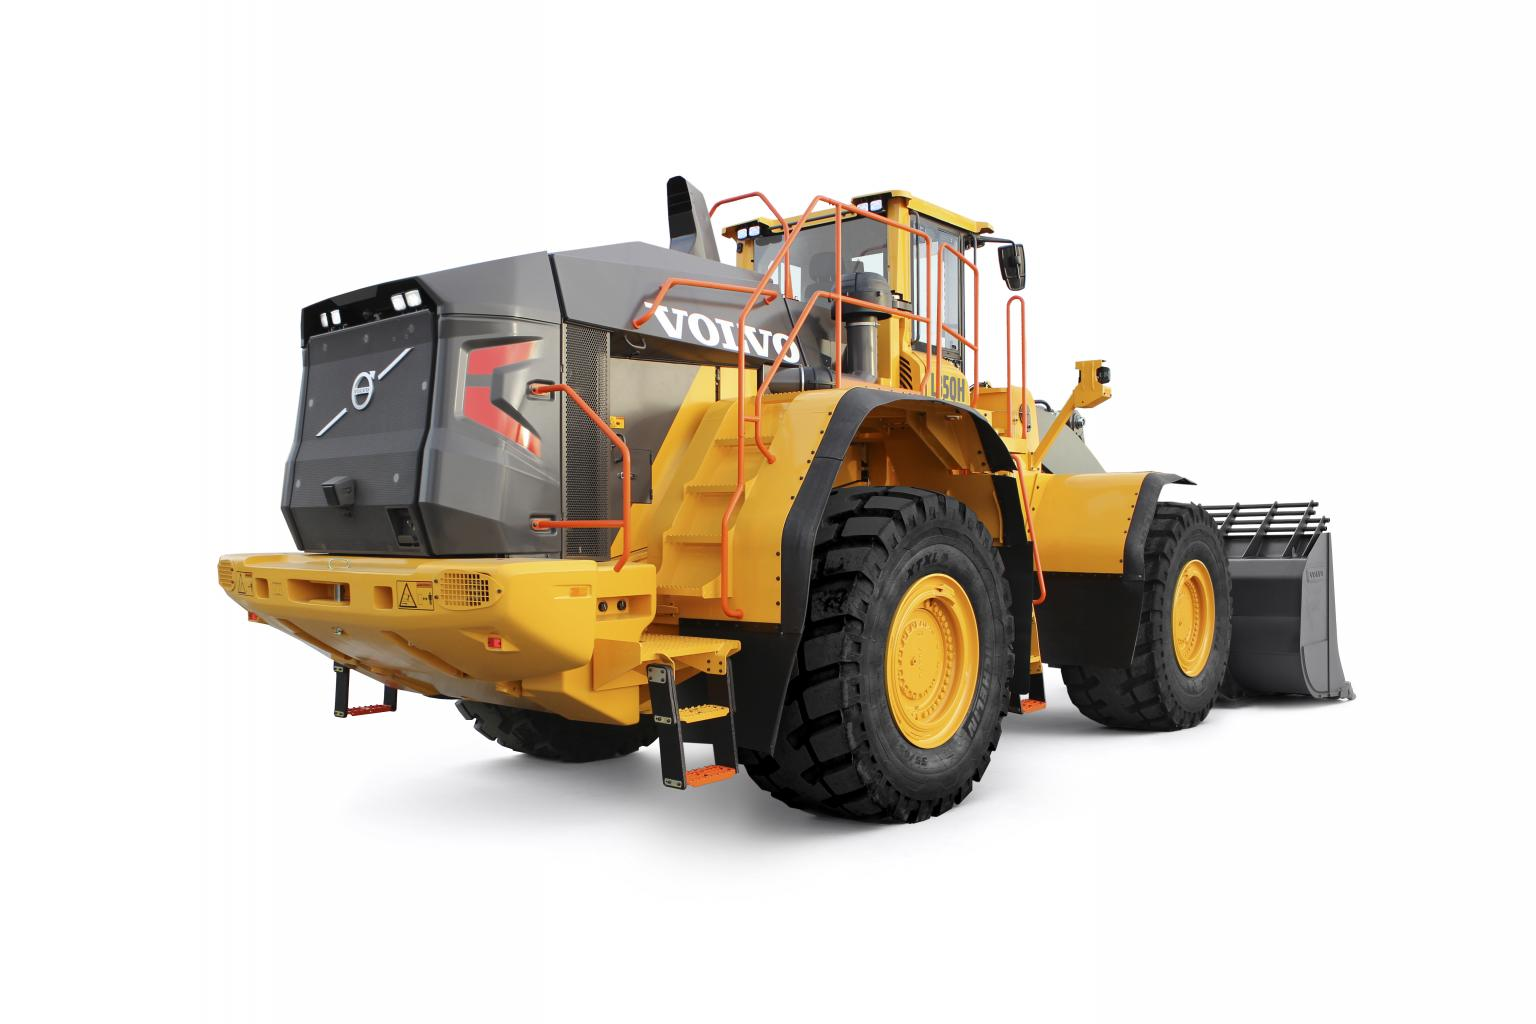 The L350H is Volvo's largest wheel loader